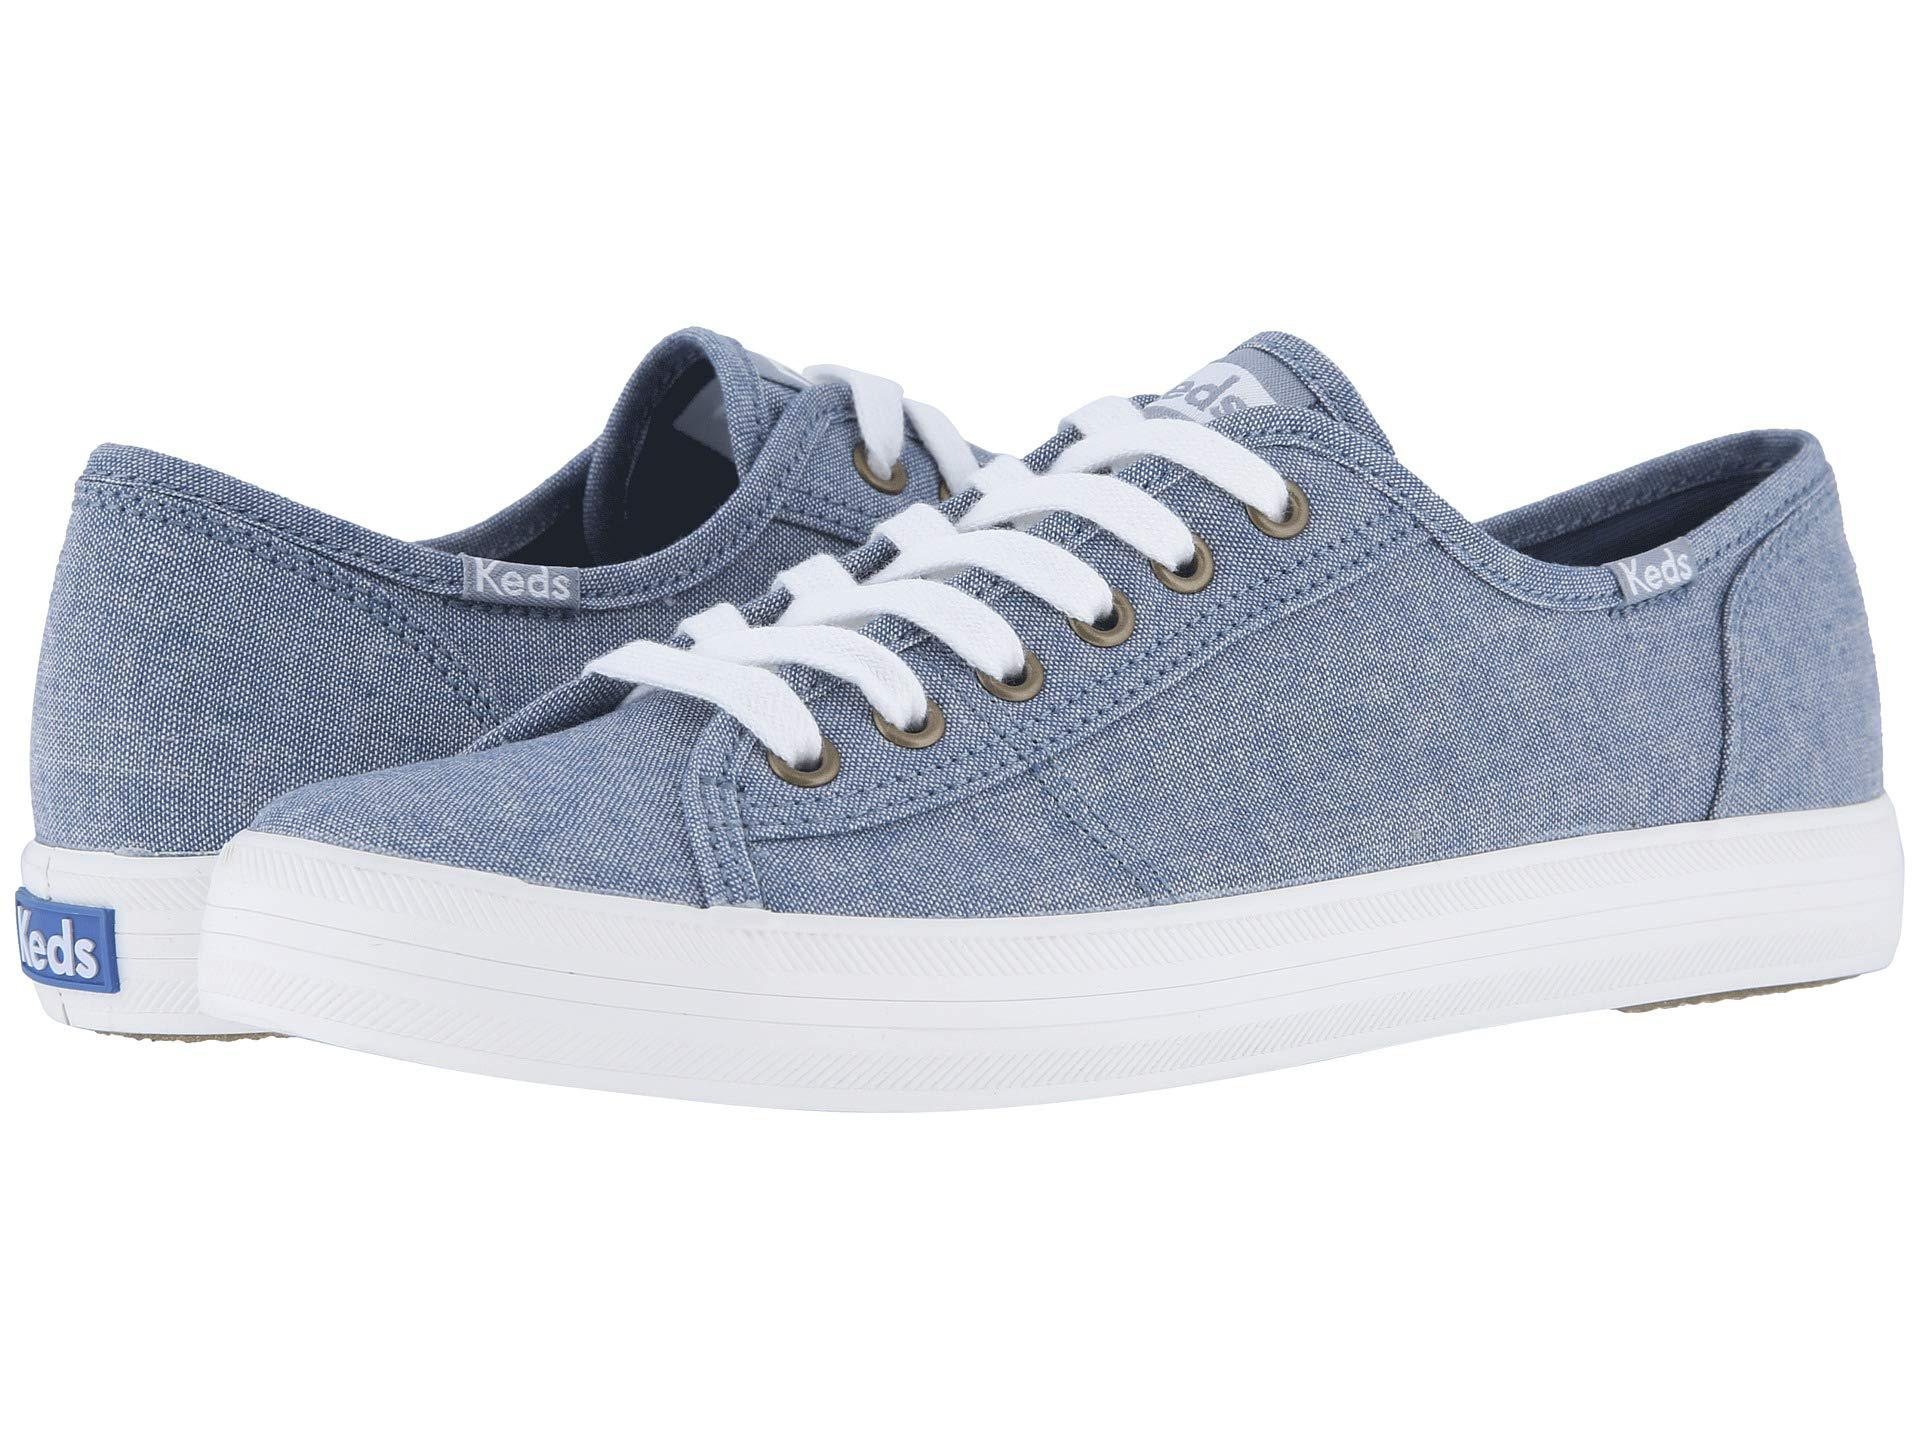 Lyst - Keds Kickstart Chambray (blue) Women s Lace Up Casual Shoes ... 05ee49835